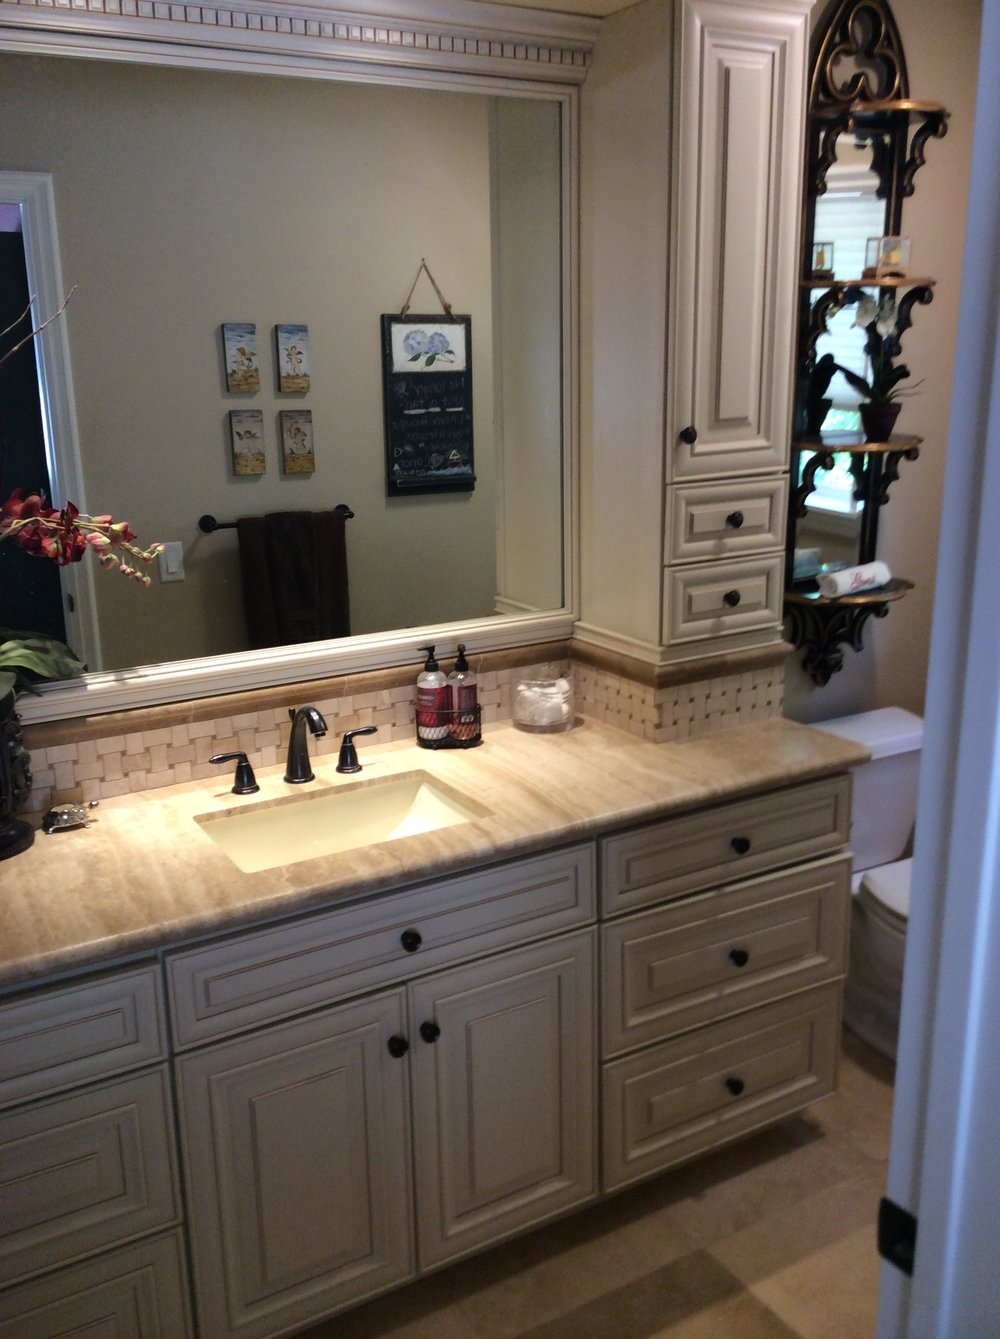 Bathroom Remodel by North-West Construction Grass Valley, CA